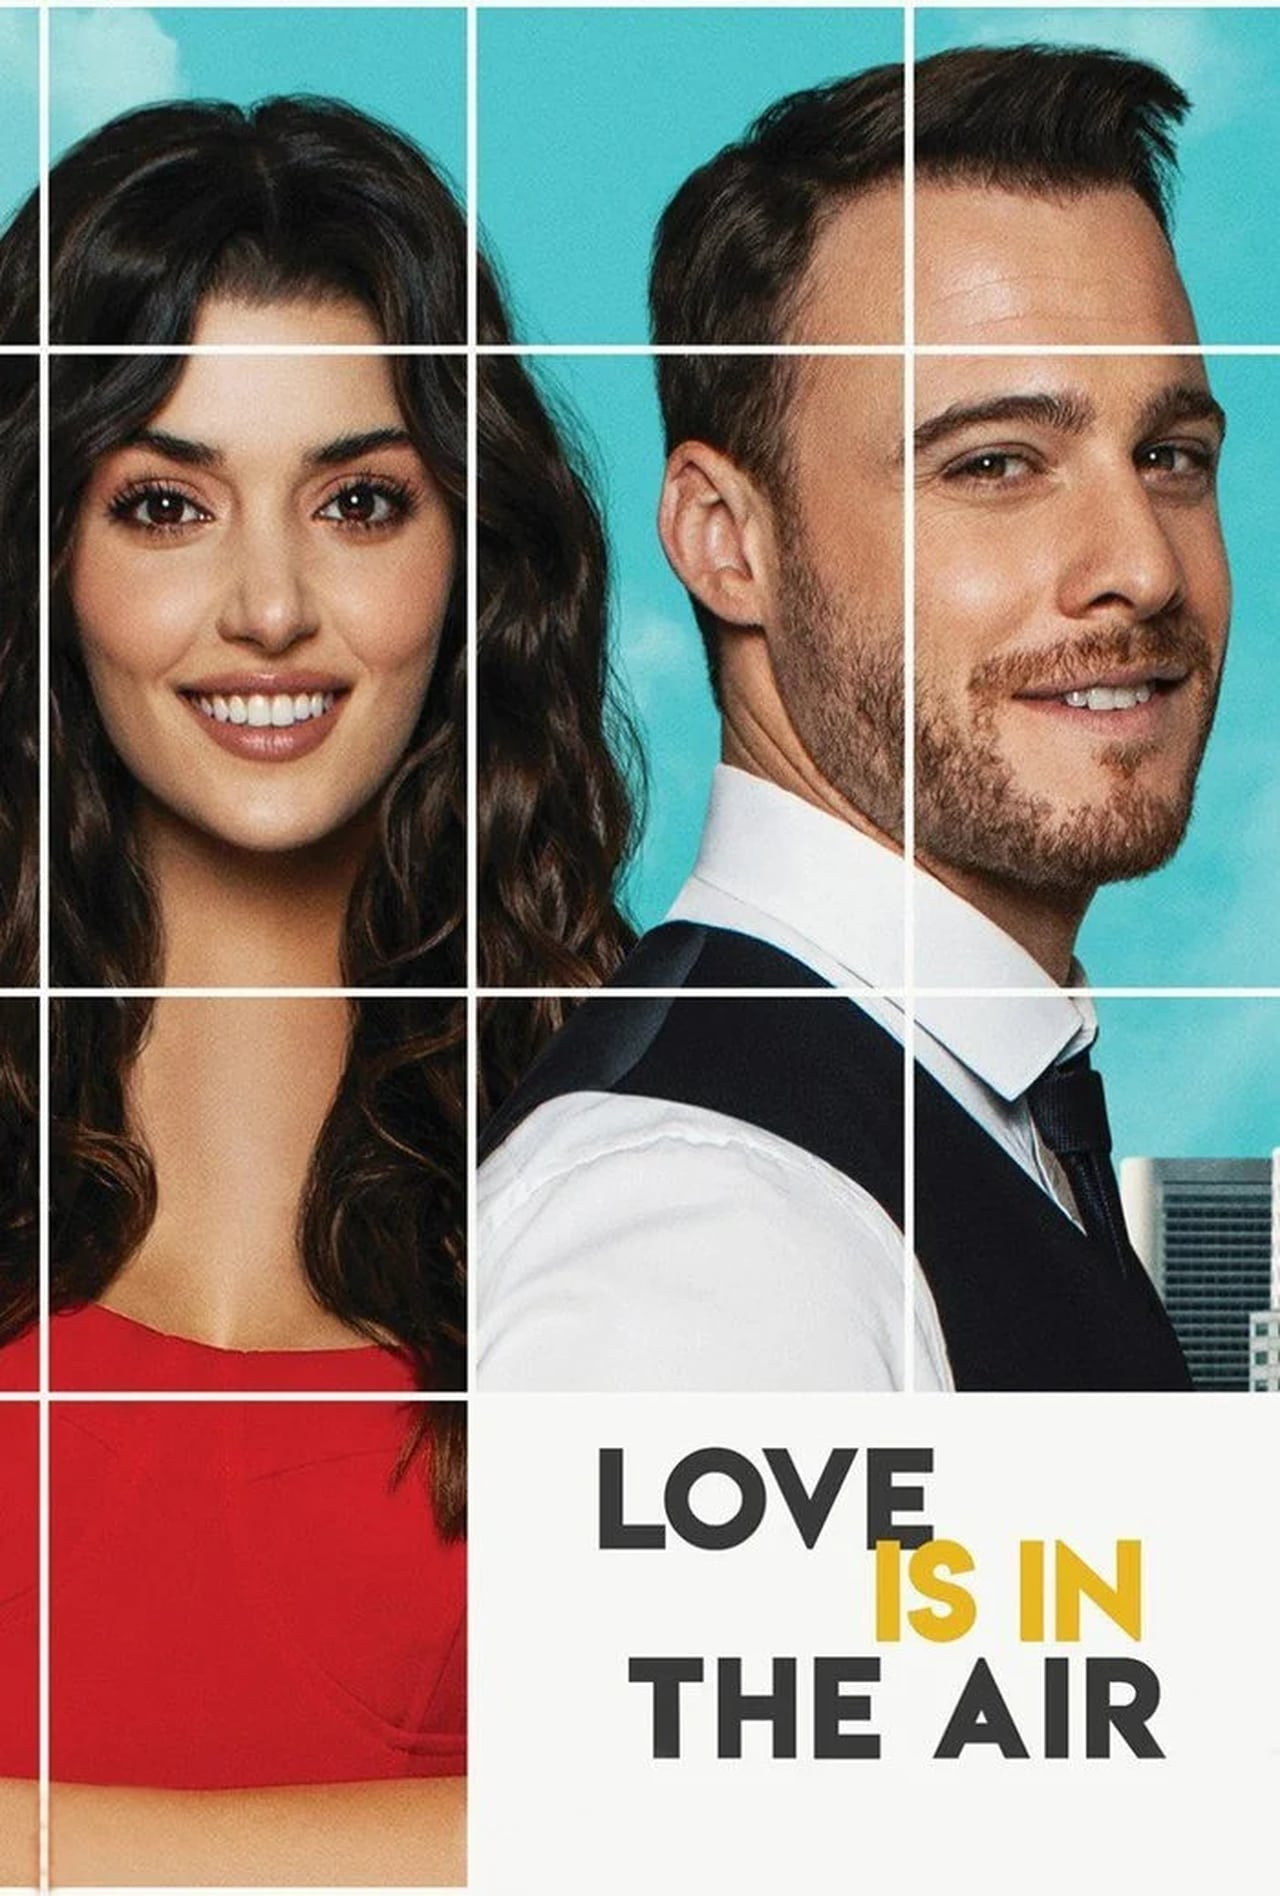 Love is in the air - Temporada 1